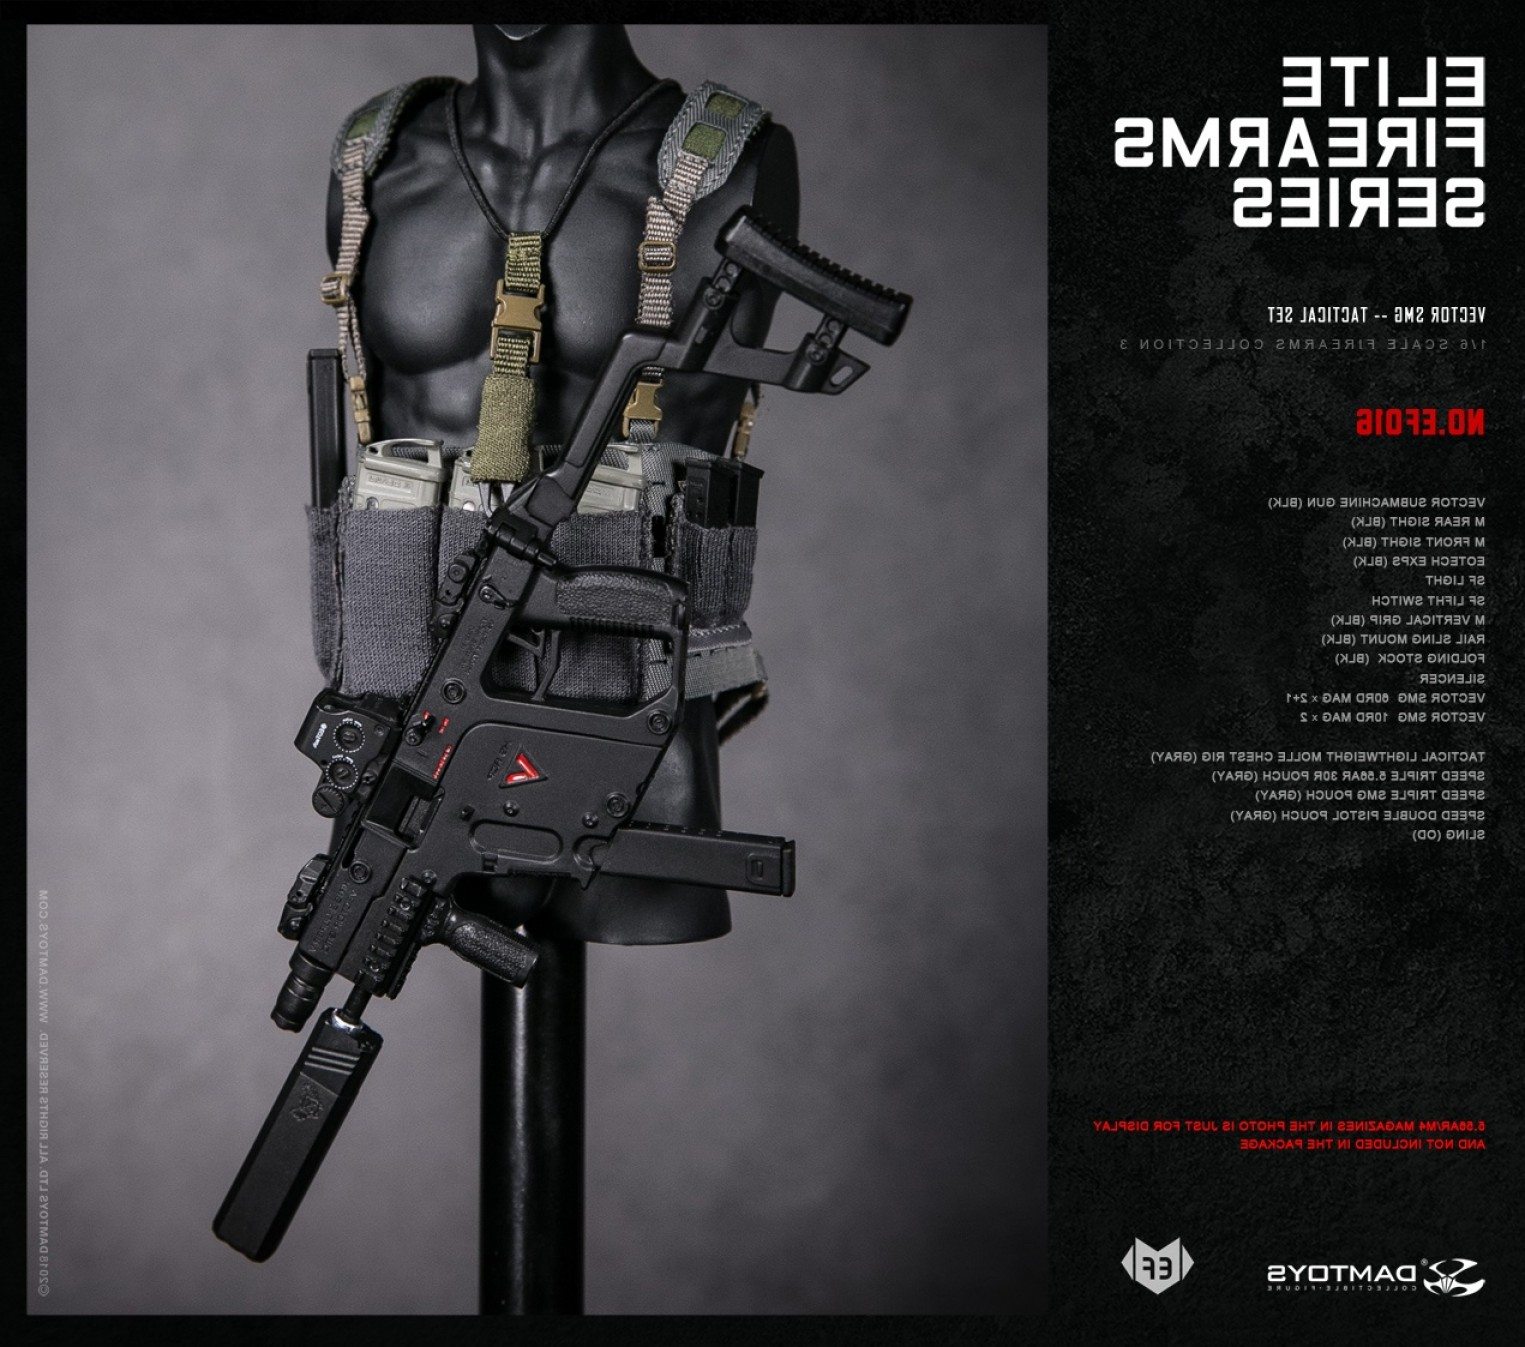 Kriss Vector Rear Grip: Damtoys Announces Elite Firearms Series Kriss Vector